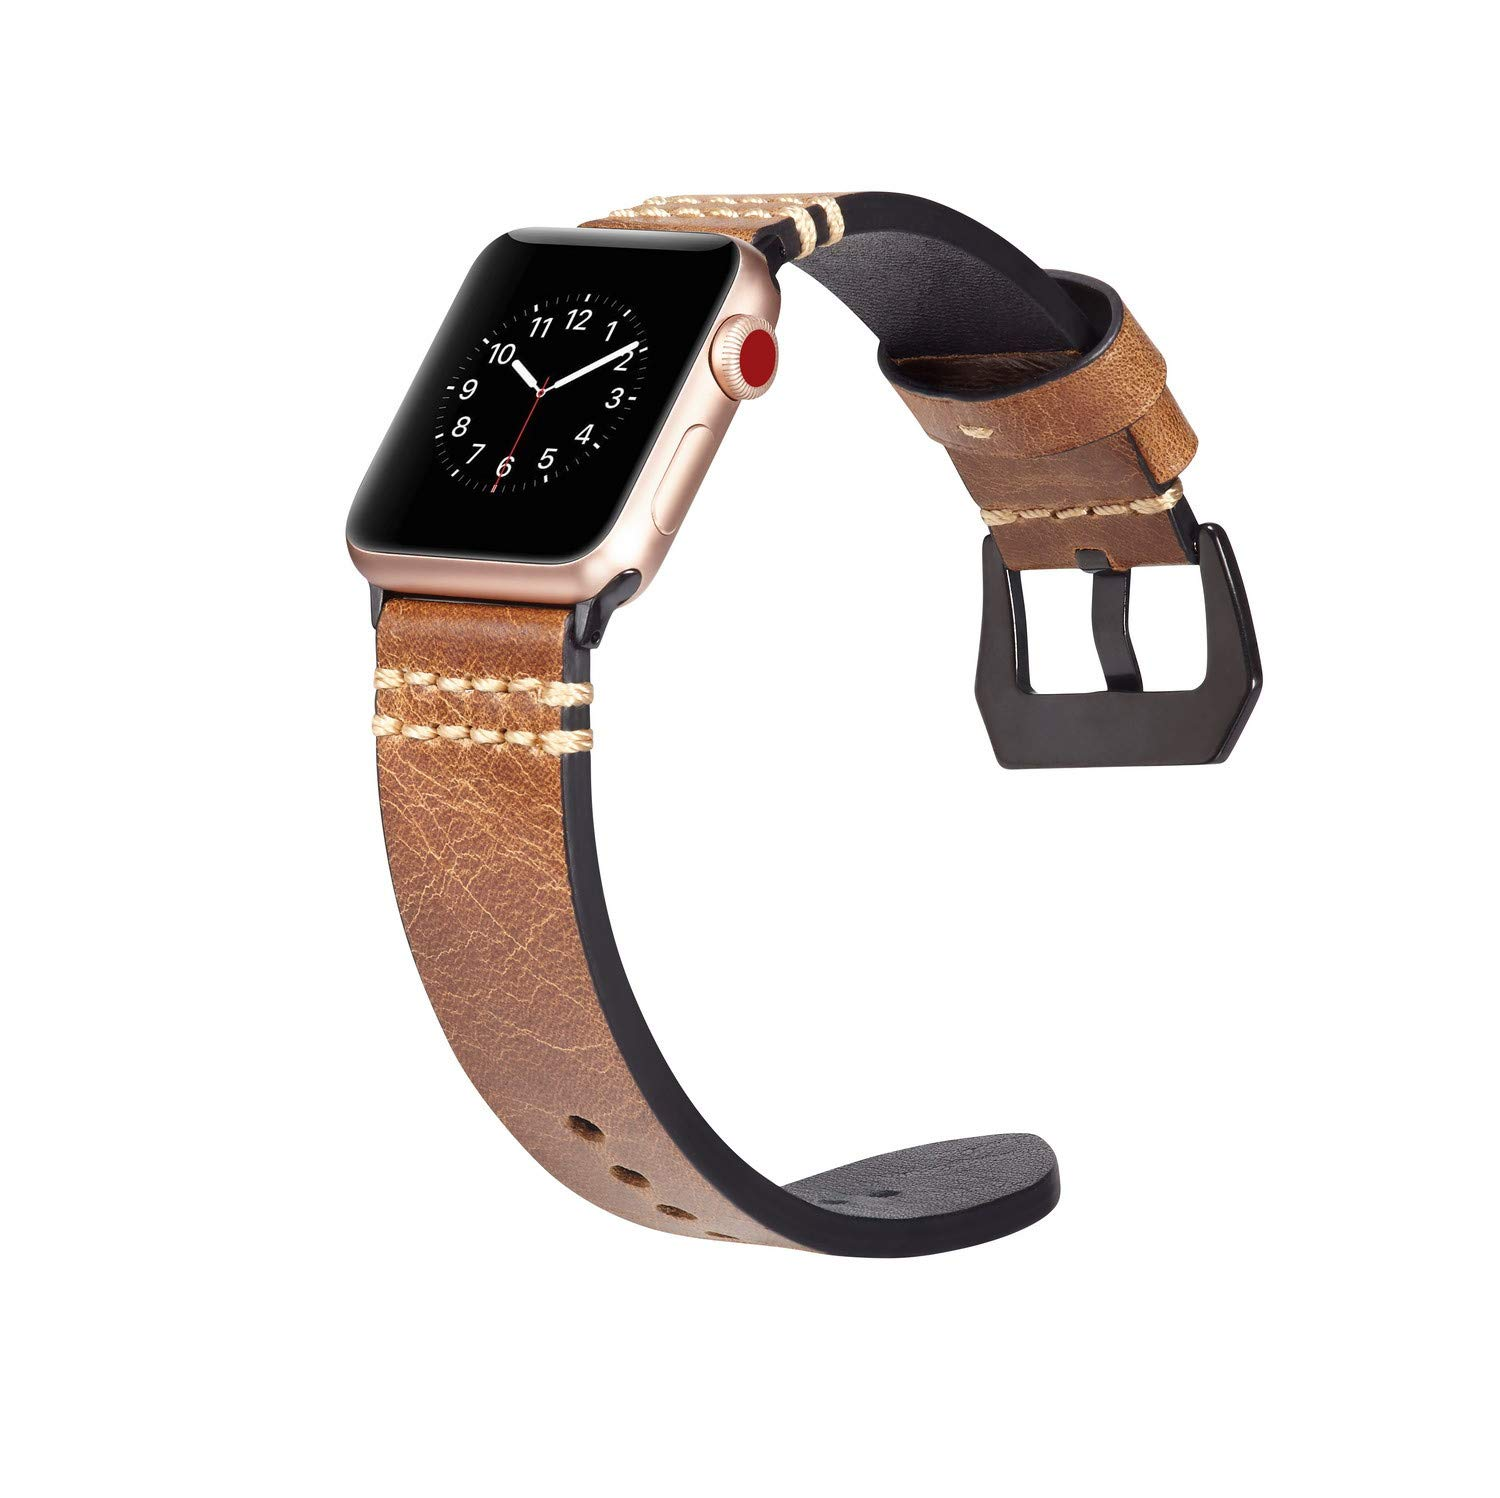 Cywulin Compatible with Apple Watch Band 38mm 42mm 40mm 44mm, Leather Replacement Loop Wrist Strap Bracelet for iWatch Series 4 3 2 1 Sport Edition with Stainless Steel Clasp Adapters (42mm/44mm, F)